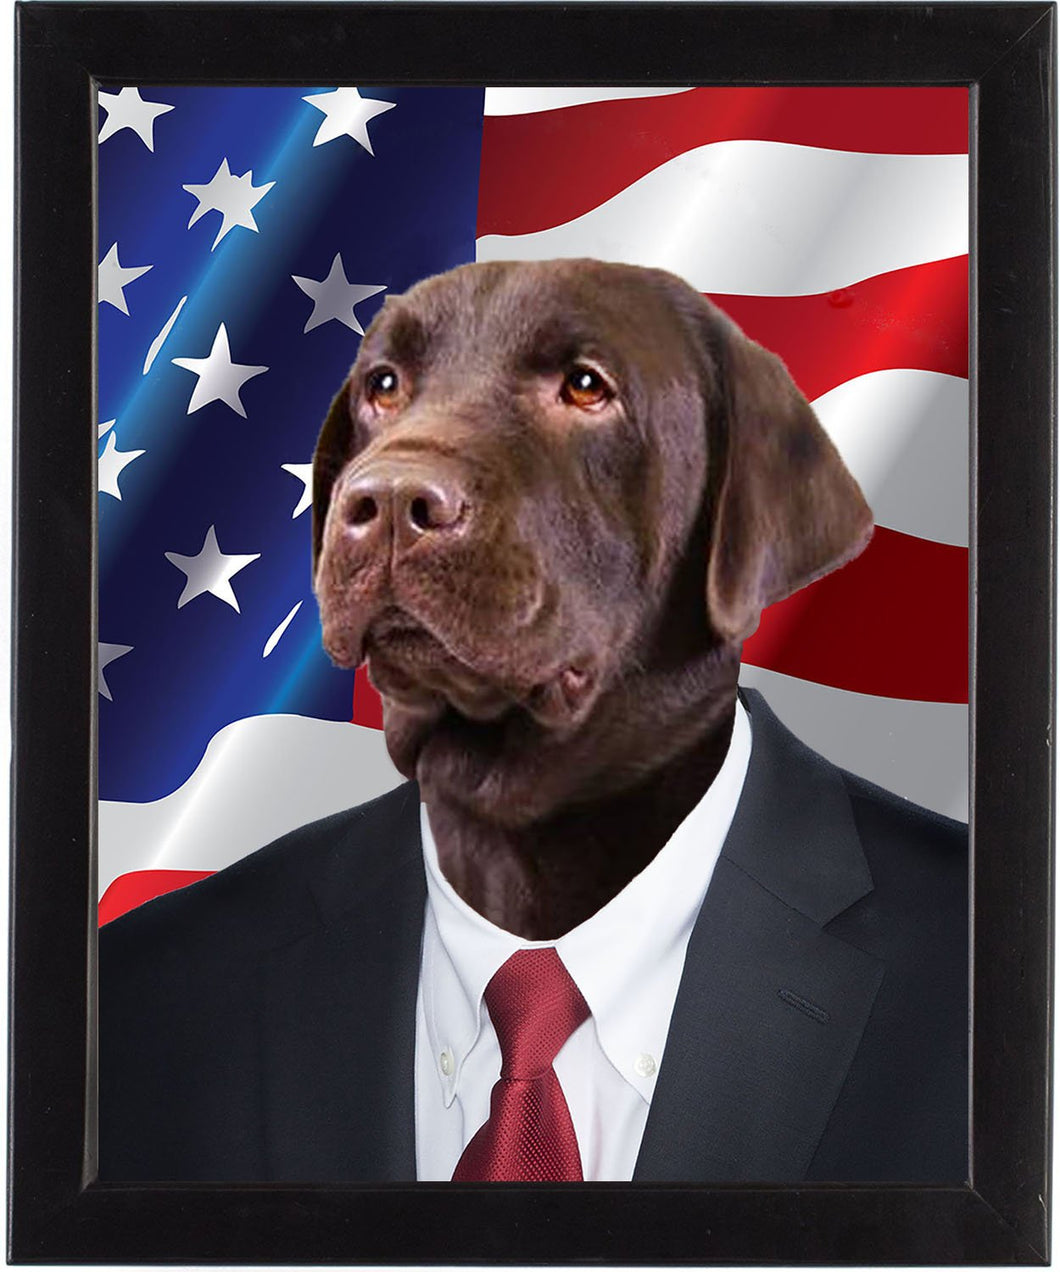 The Candidate _  8x10 framed dog portrait